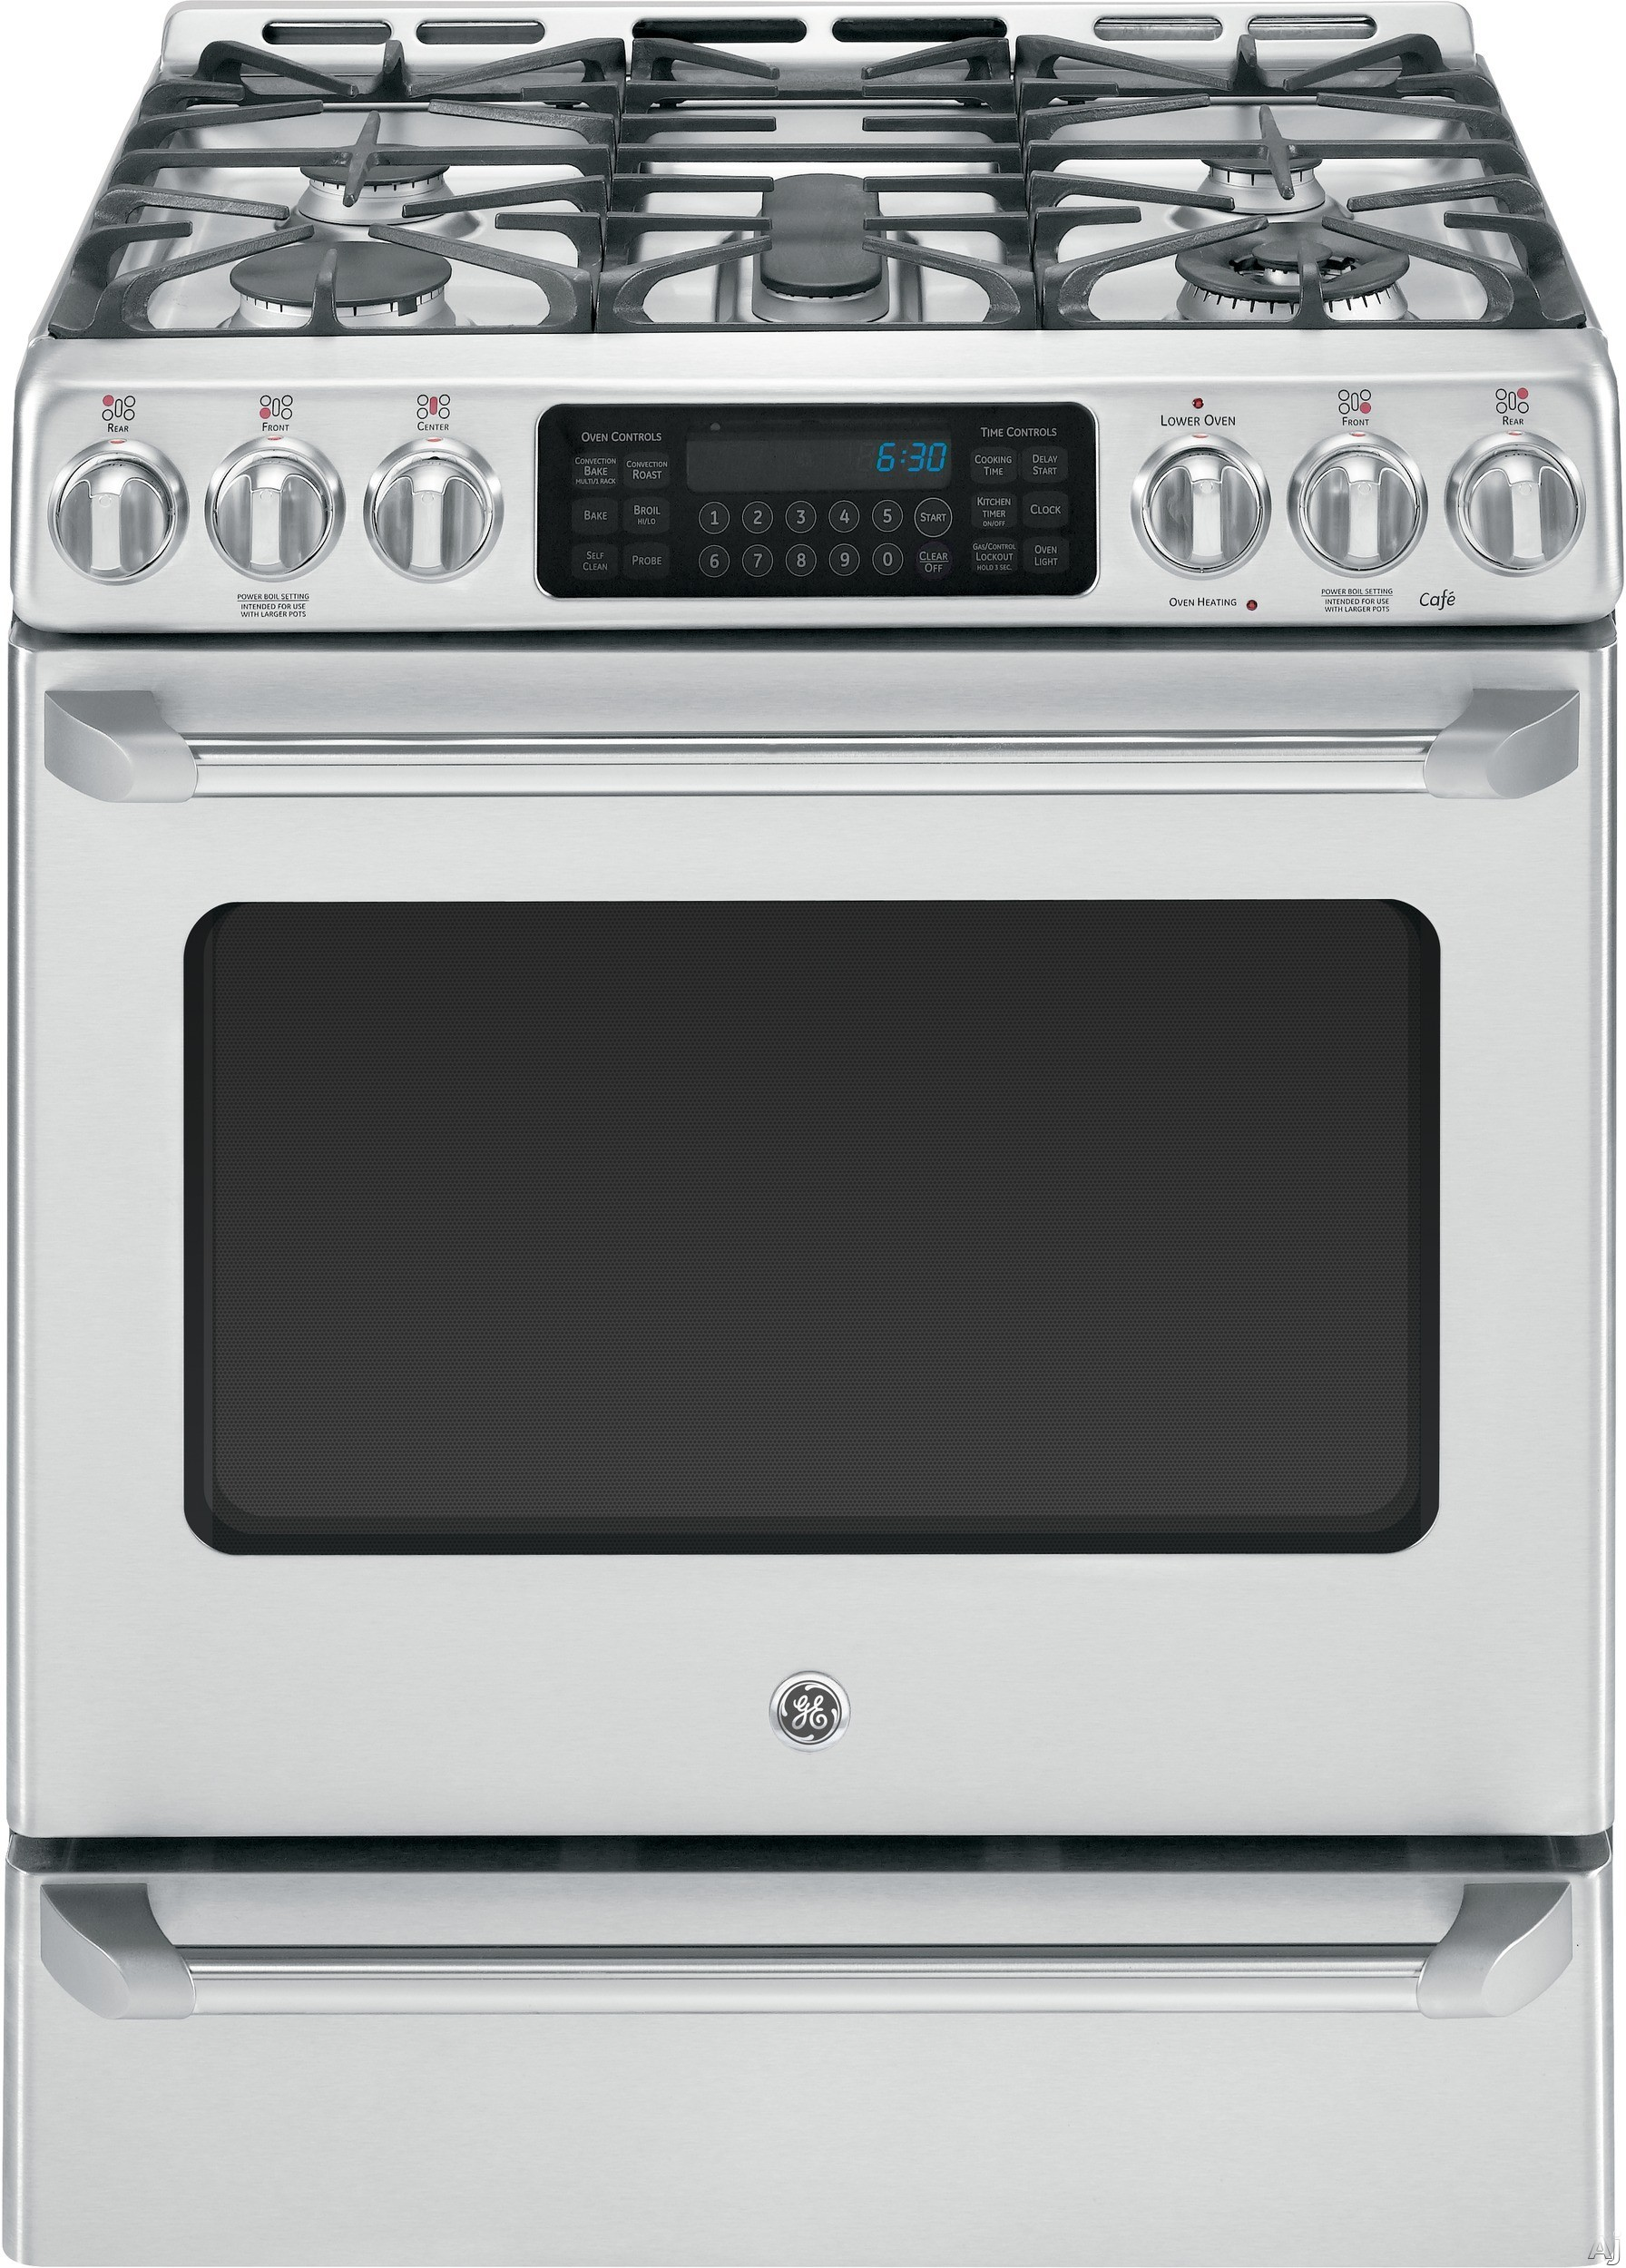 Ge Cafe Series Gas Range Reviews